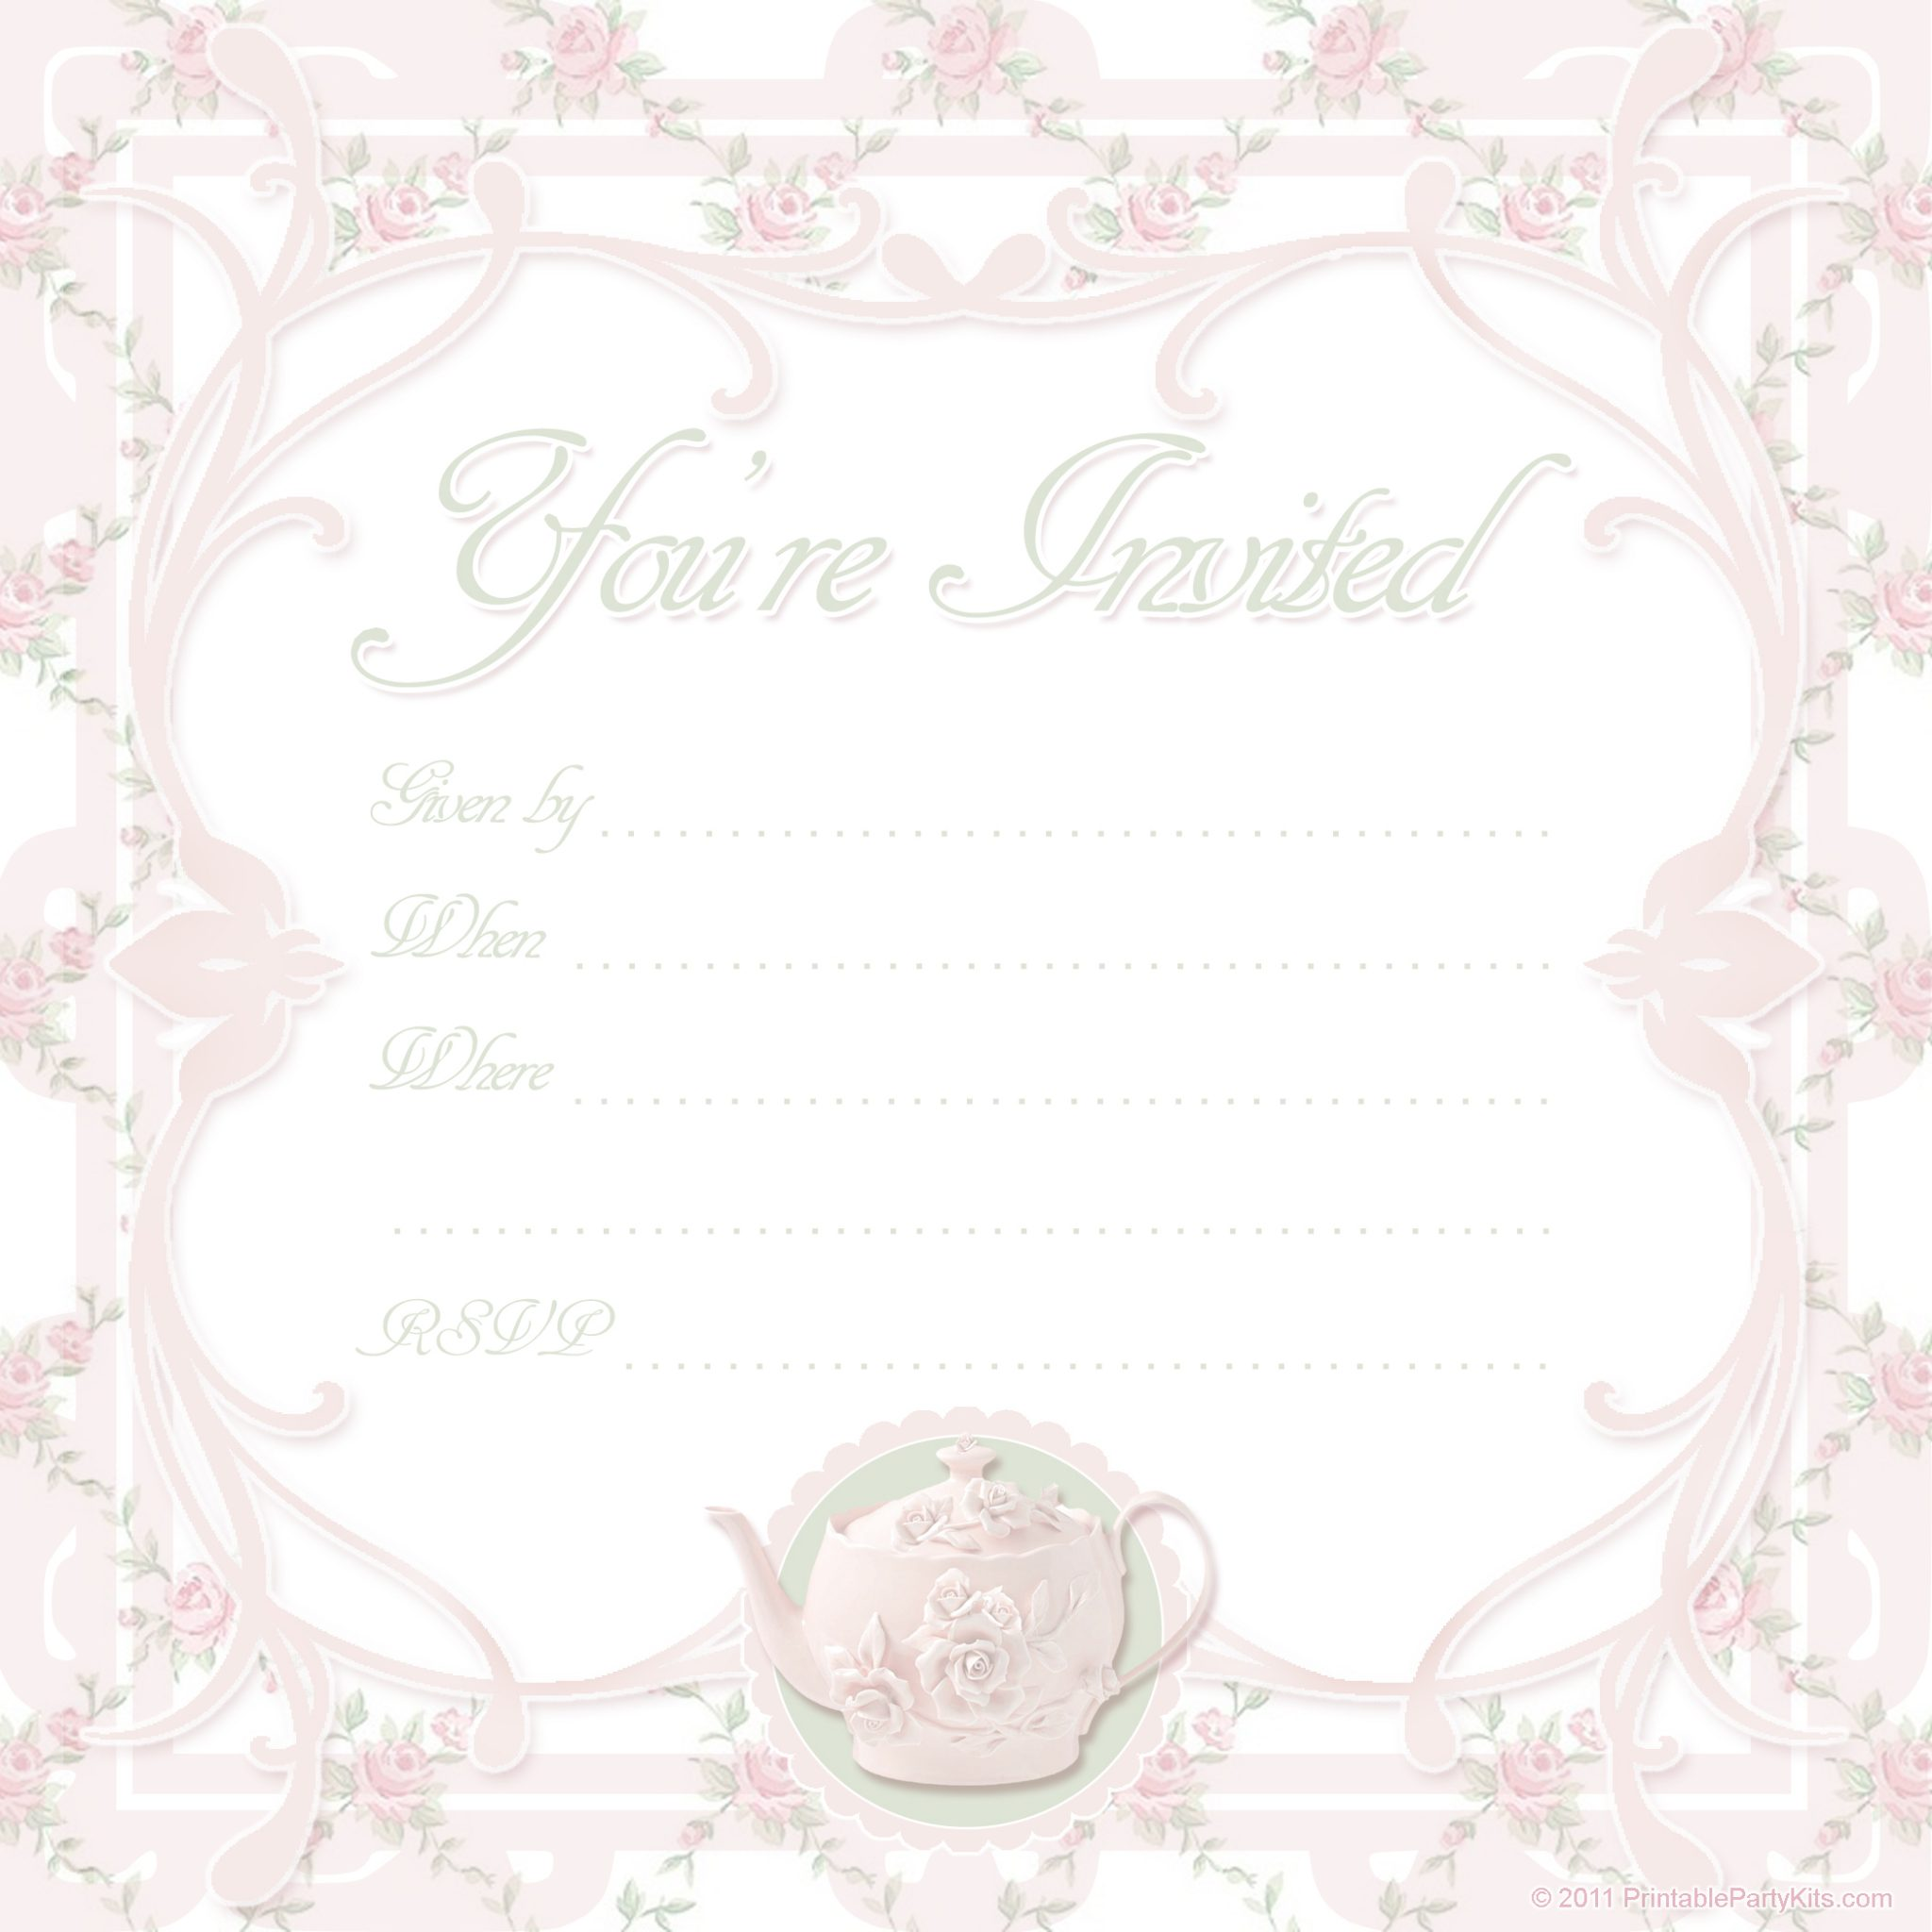 Free Printable Tea Party Invite Template - Printable Party Kits